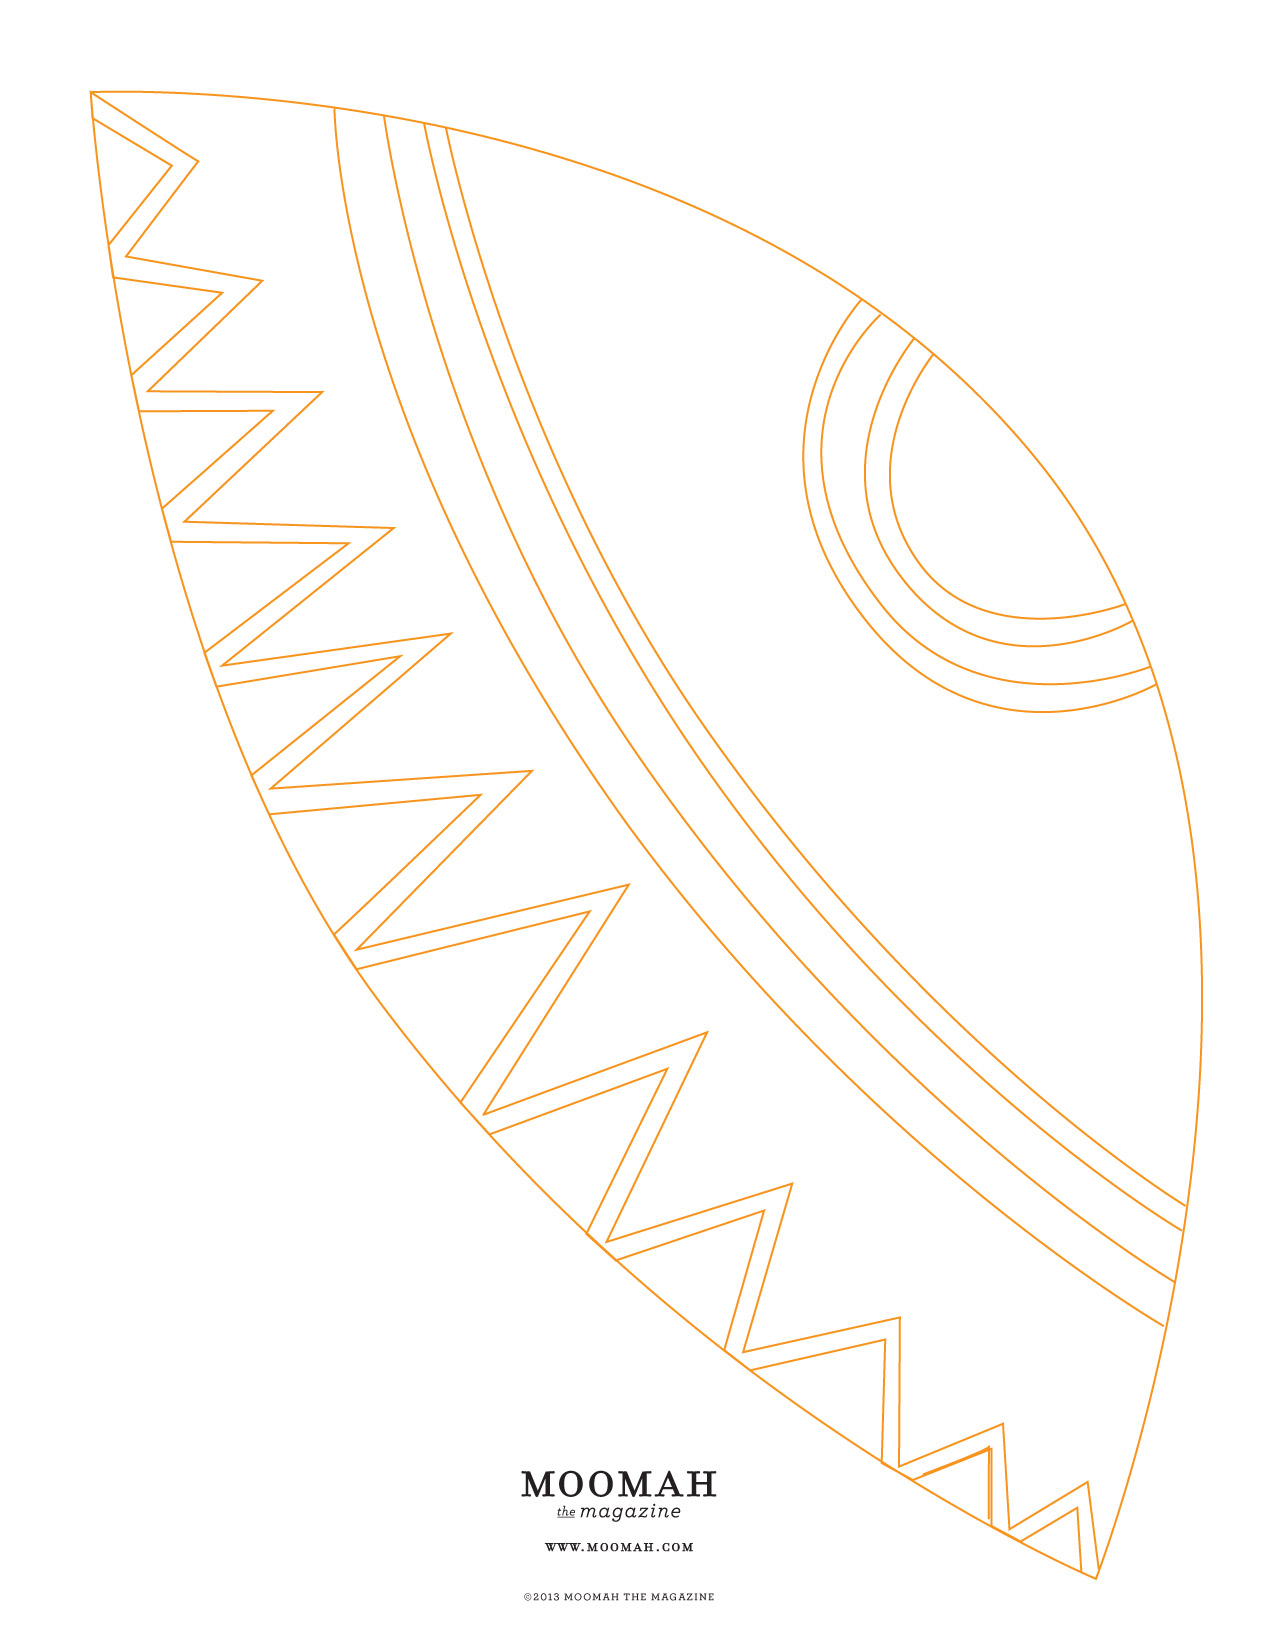 CLICK TO PRINT YOUR TEEPEE TEMPLATE